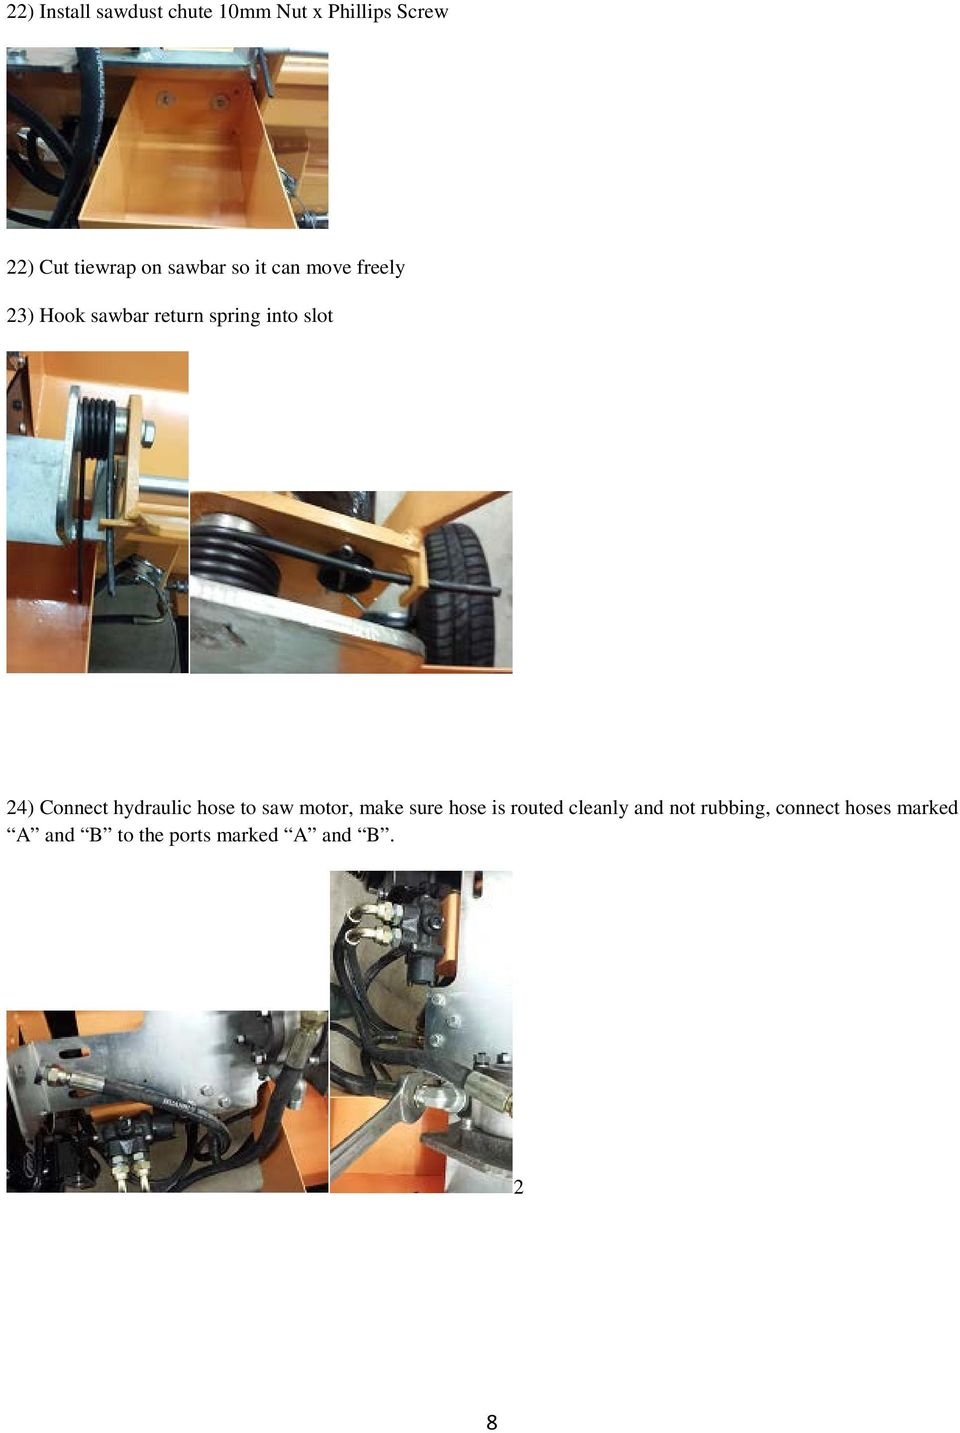 Connect hydraulic hose to saw motor, make sure hose is routed cleanly